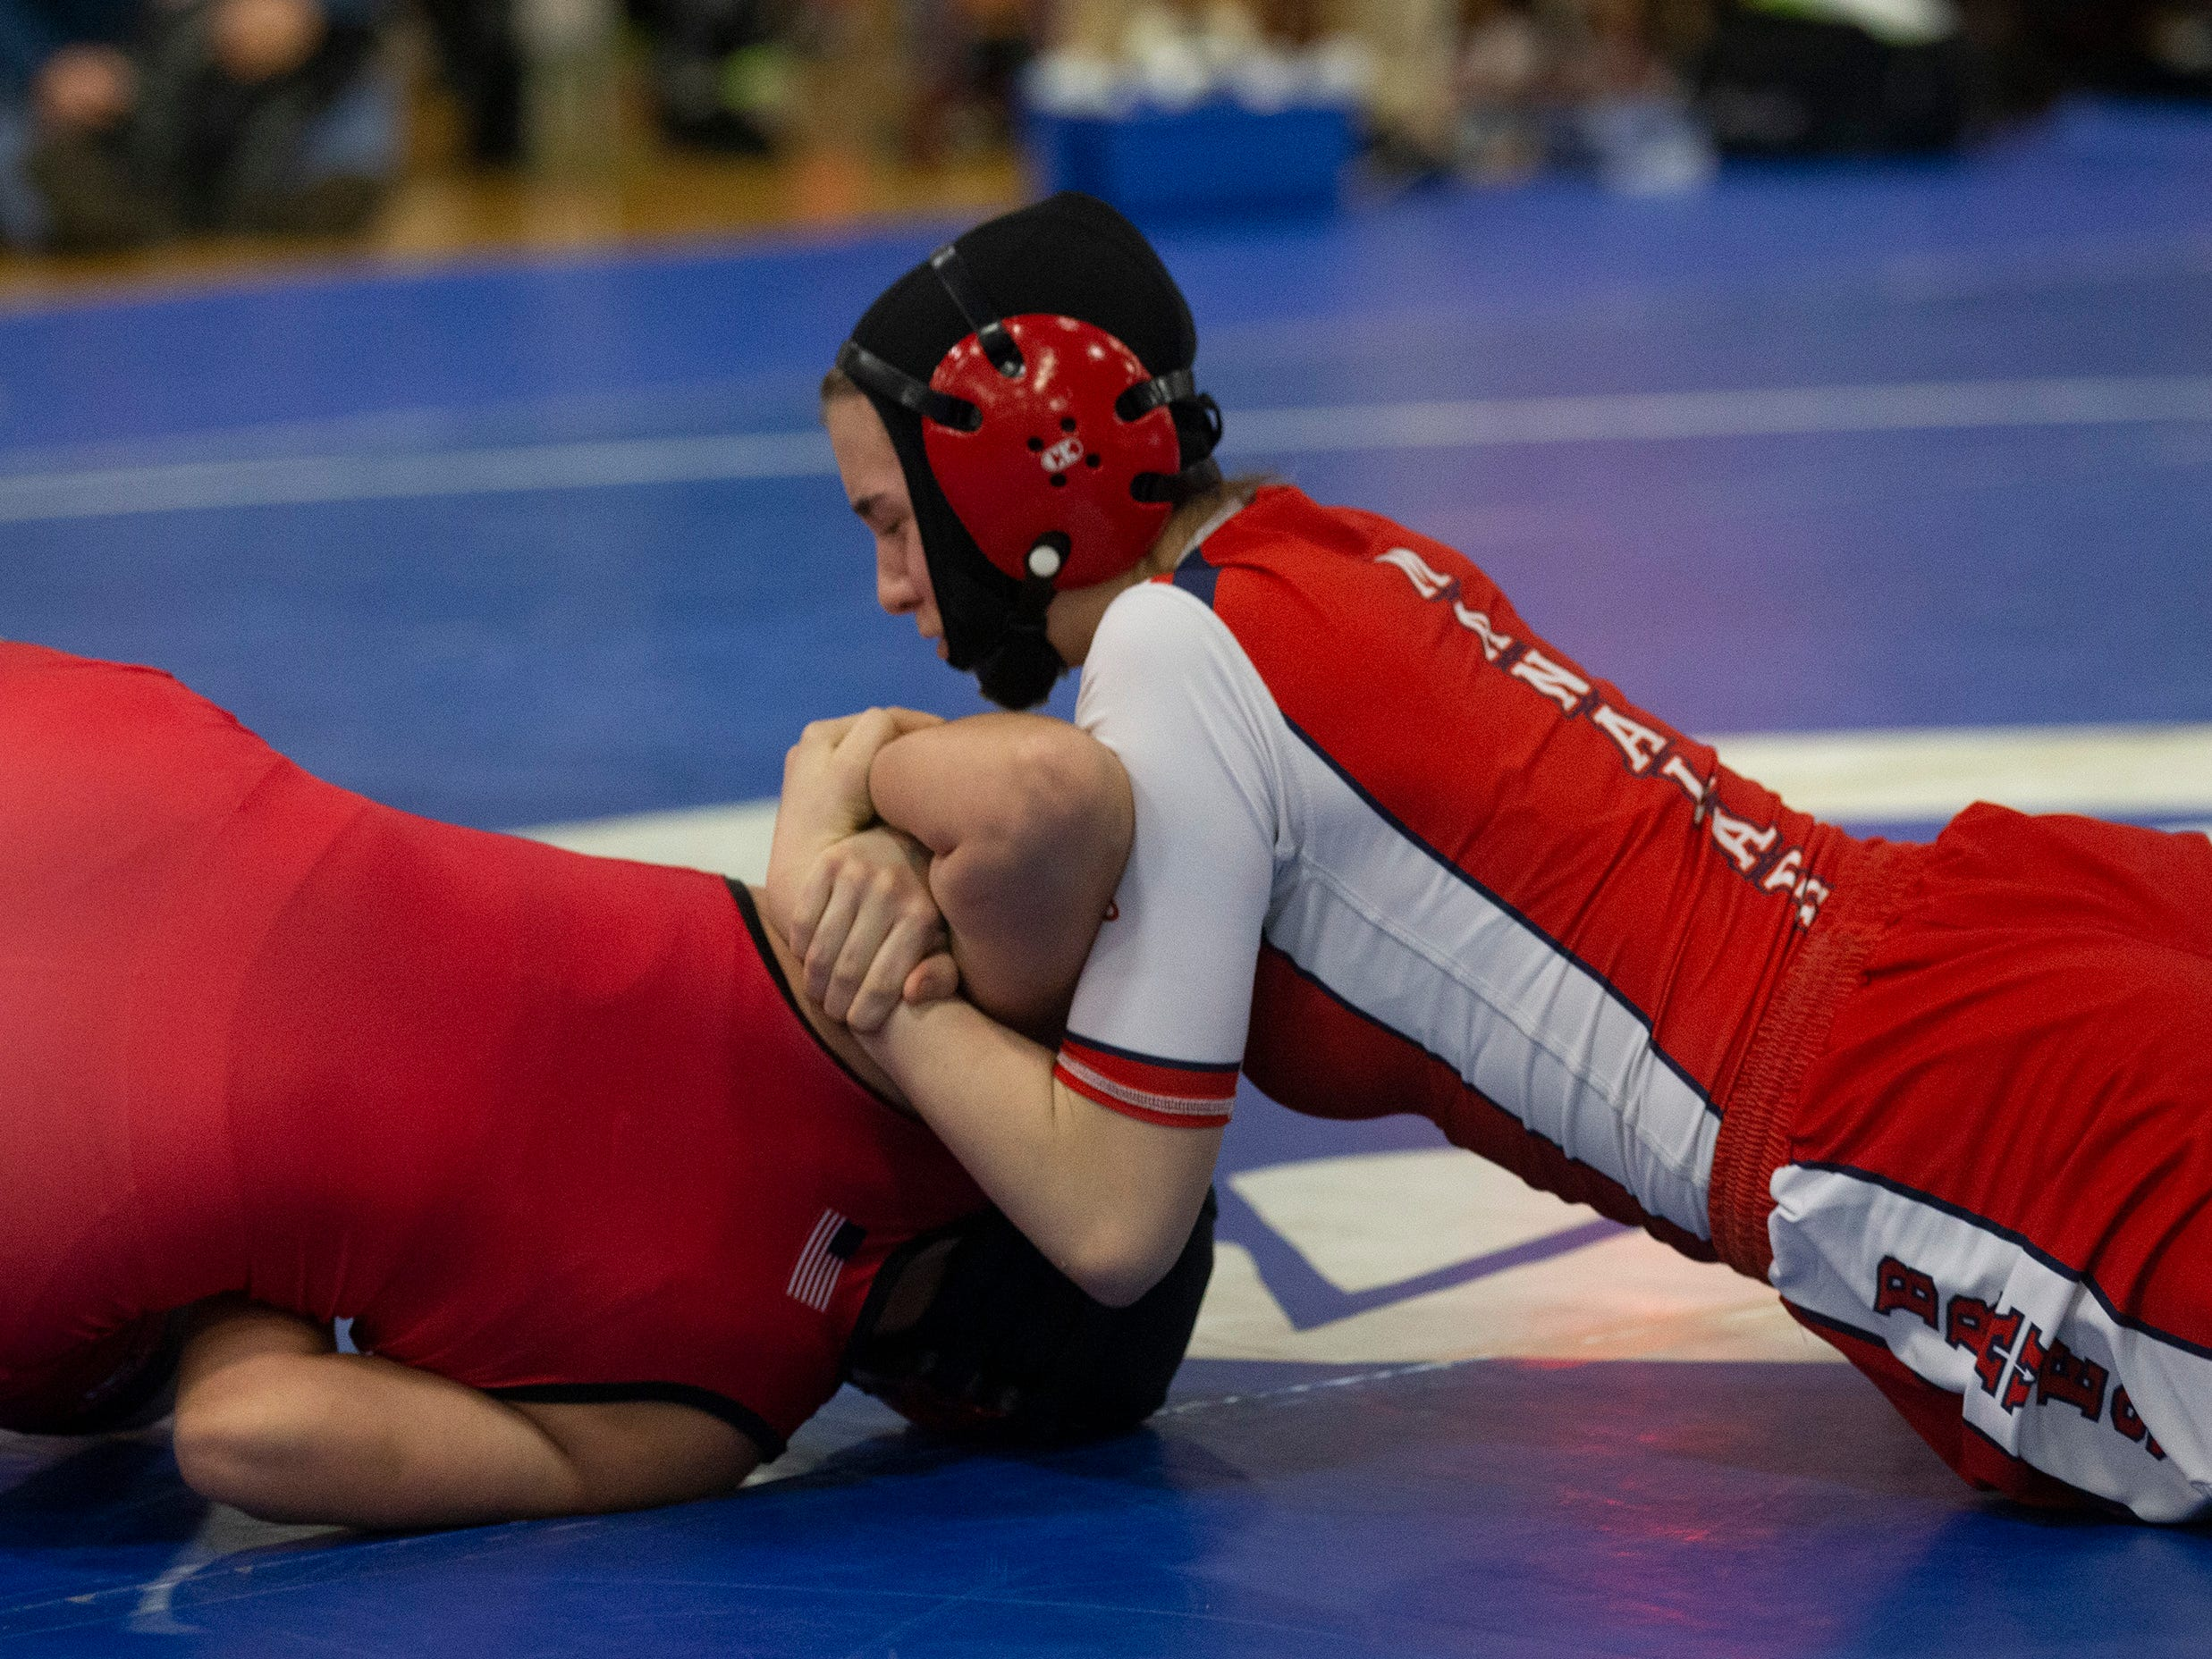 Manalapan's Jesse Johnson defeats Kingsway's Victoria Lipka in their 136 lbs. bout.   NJSIAA Girls Region Wrestling at Red Bank Regional High School in Red Bank NJ on February 17, 2019.